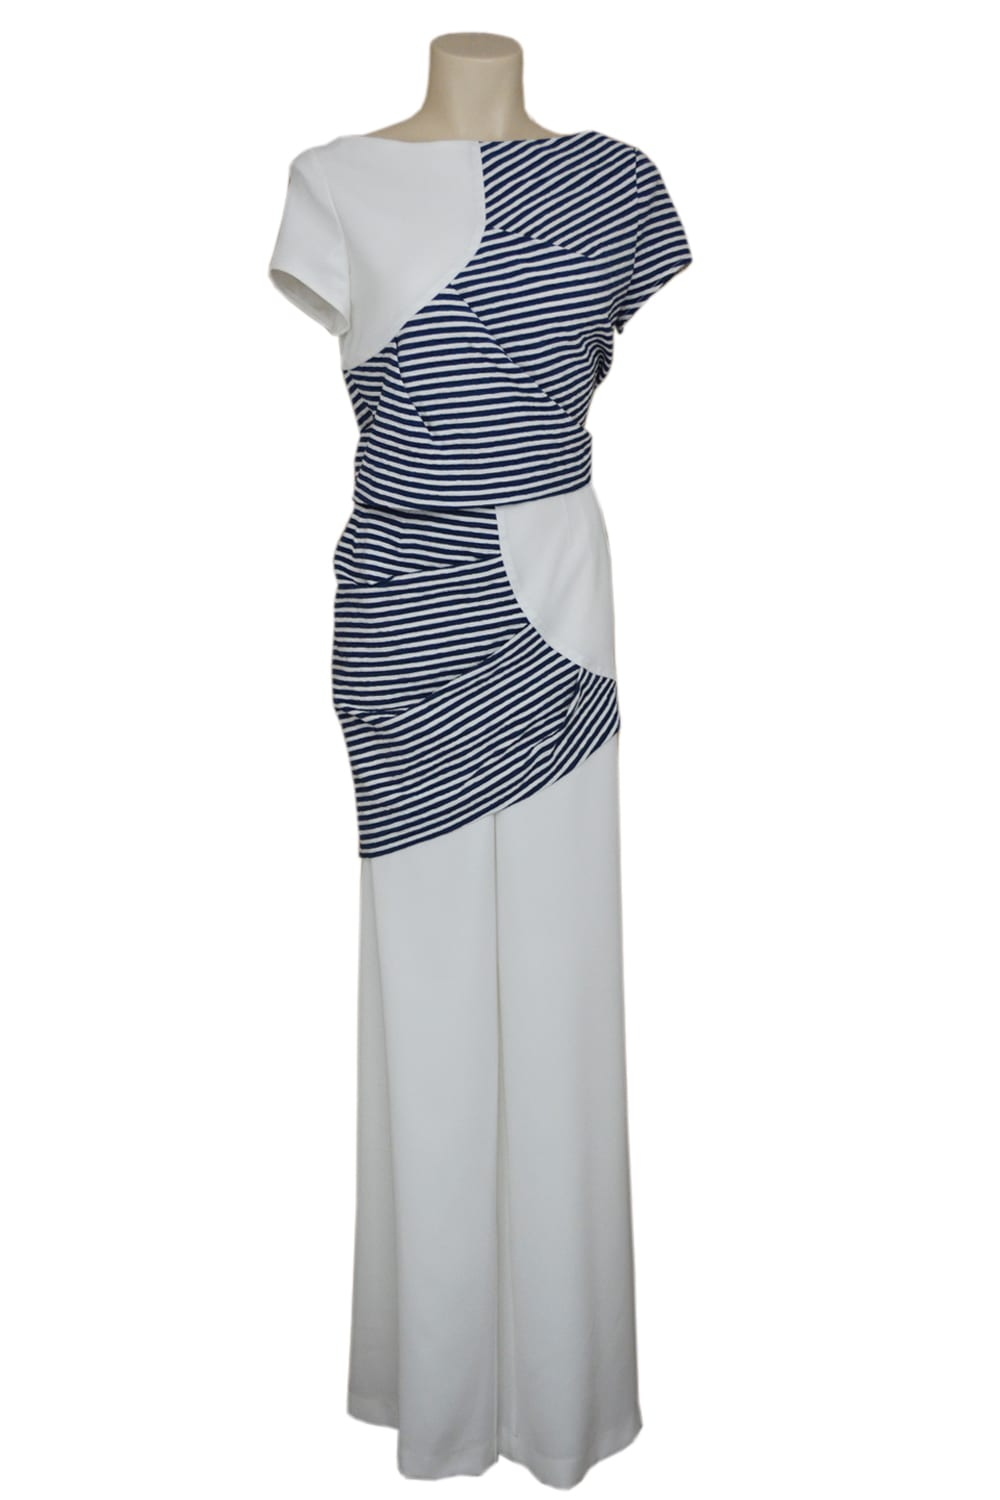 Striped set with a sleeveless bolero and fluid pants in stretch cotton and crepe blue and white.  JIG Style Couture set by Parisian stylist Erik Schaix.